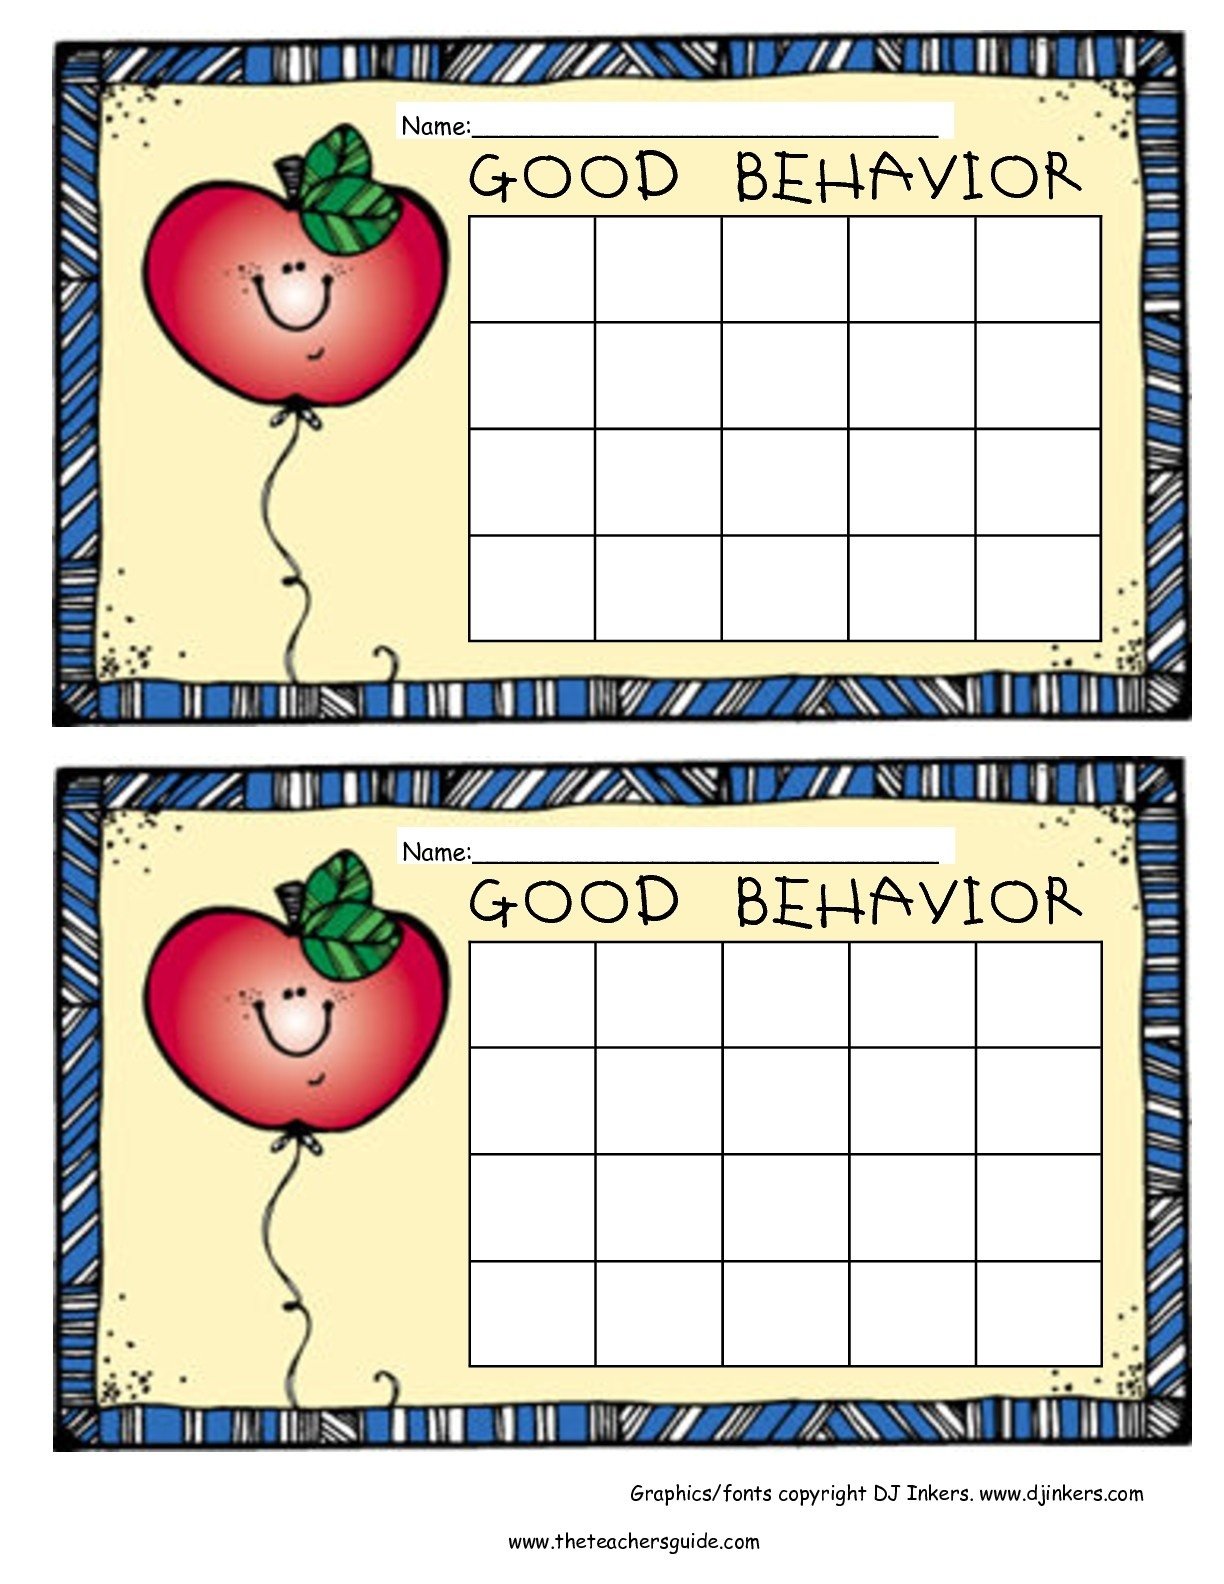 Free Printable Reward And Incentive Charts  Free Printable Blank Behavior Charts